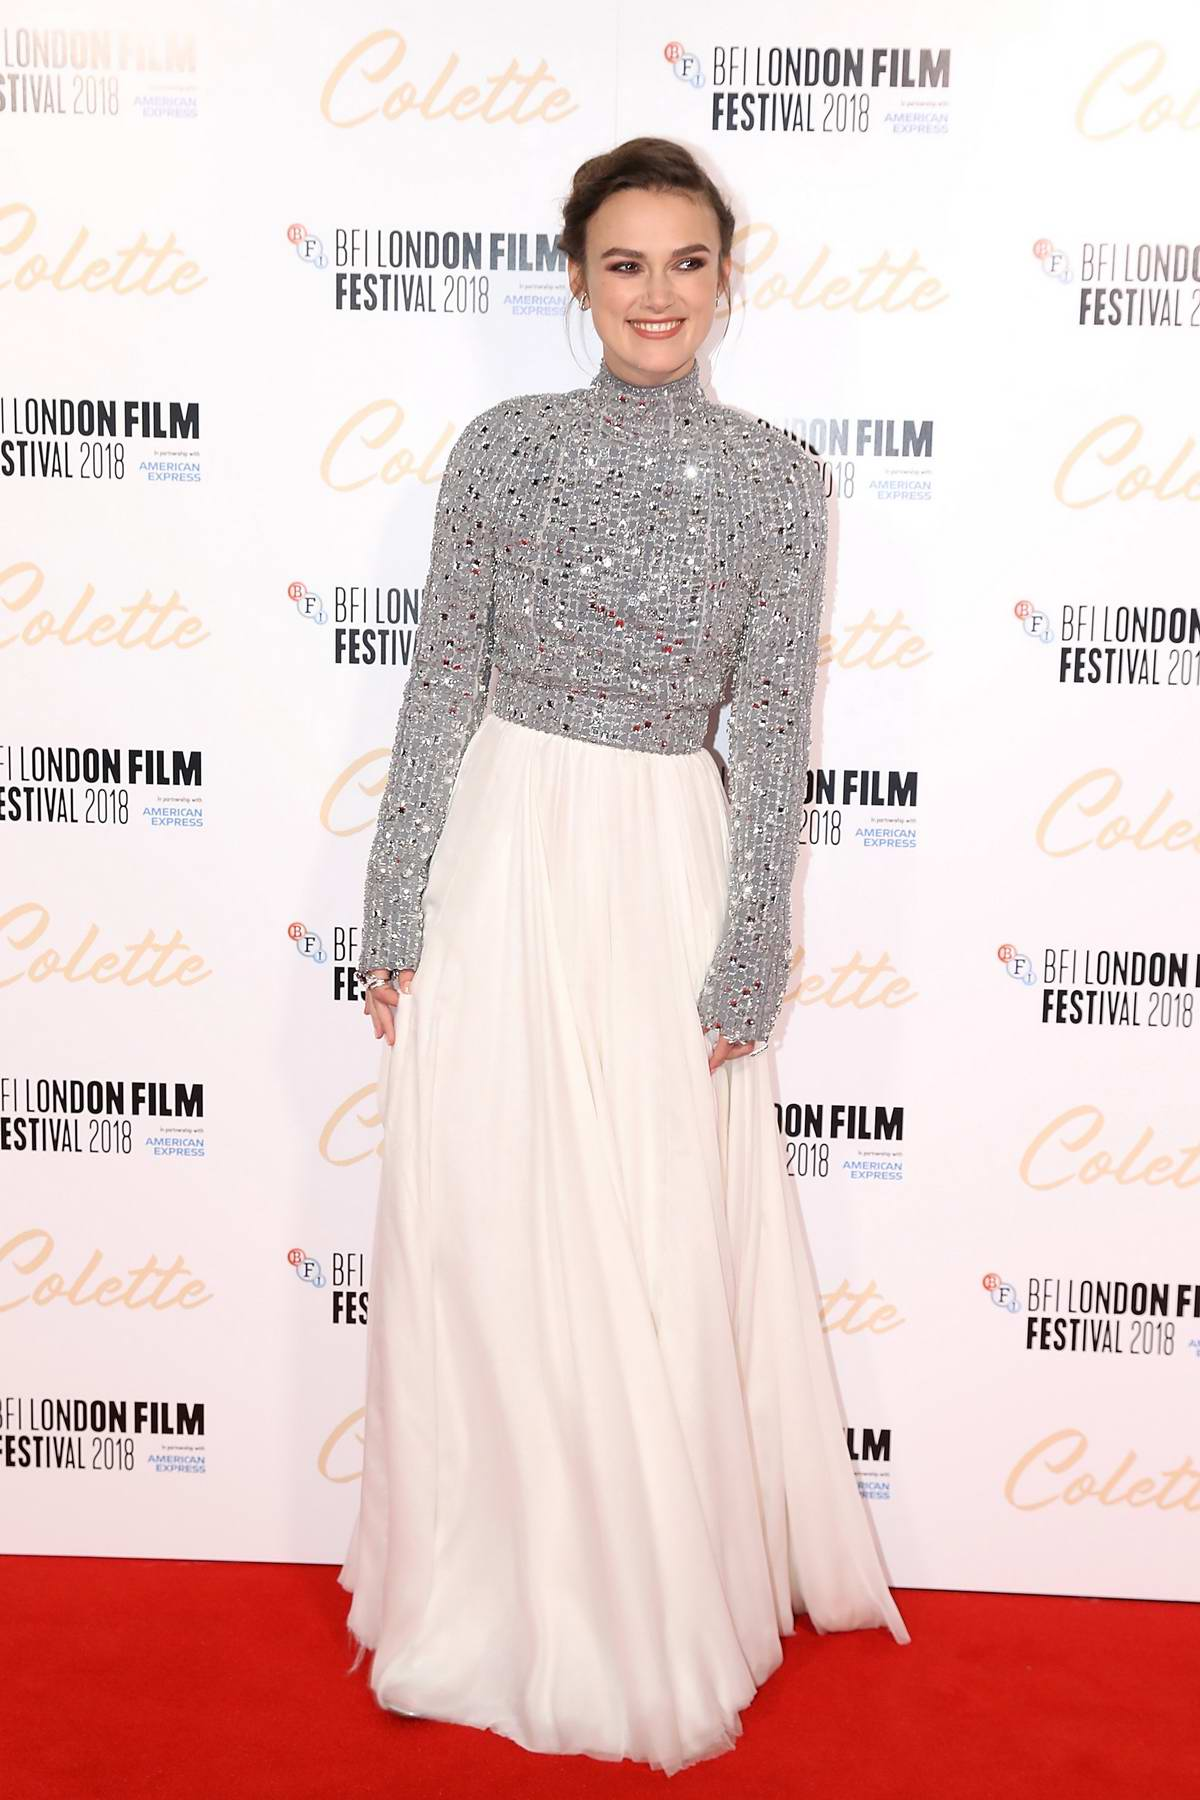 Keira Knightley attends 'Colette' premiere and BFI Patrons gala during the 62nd BFI London Film Festival in London, UK